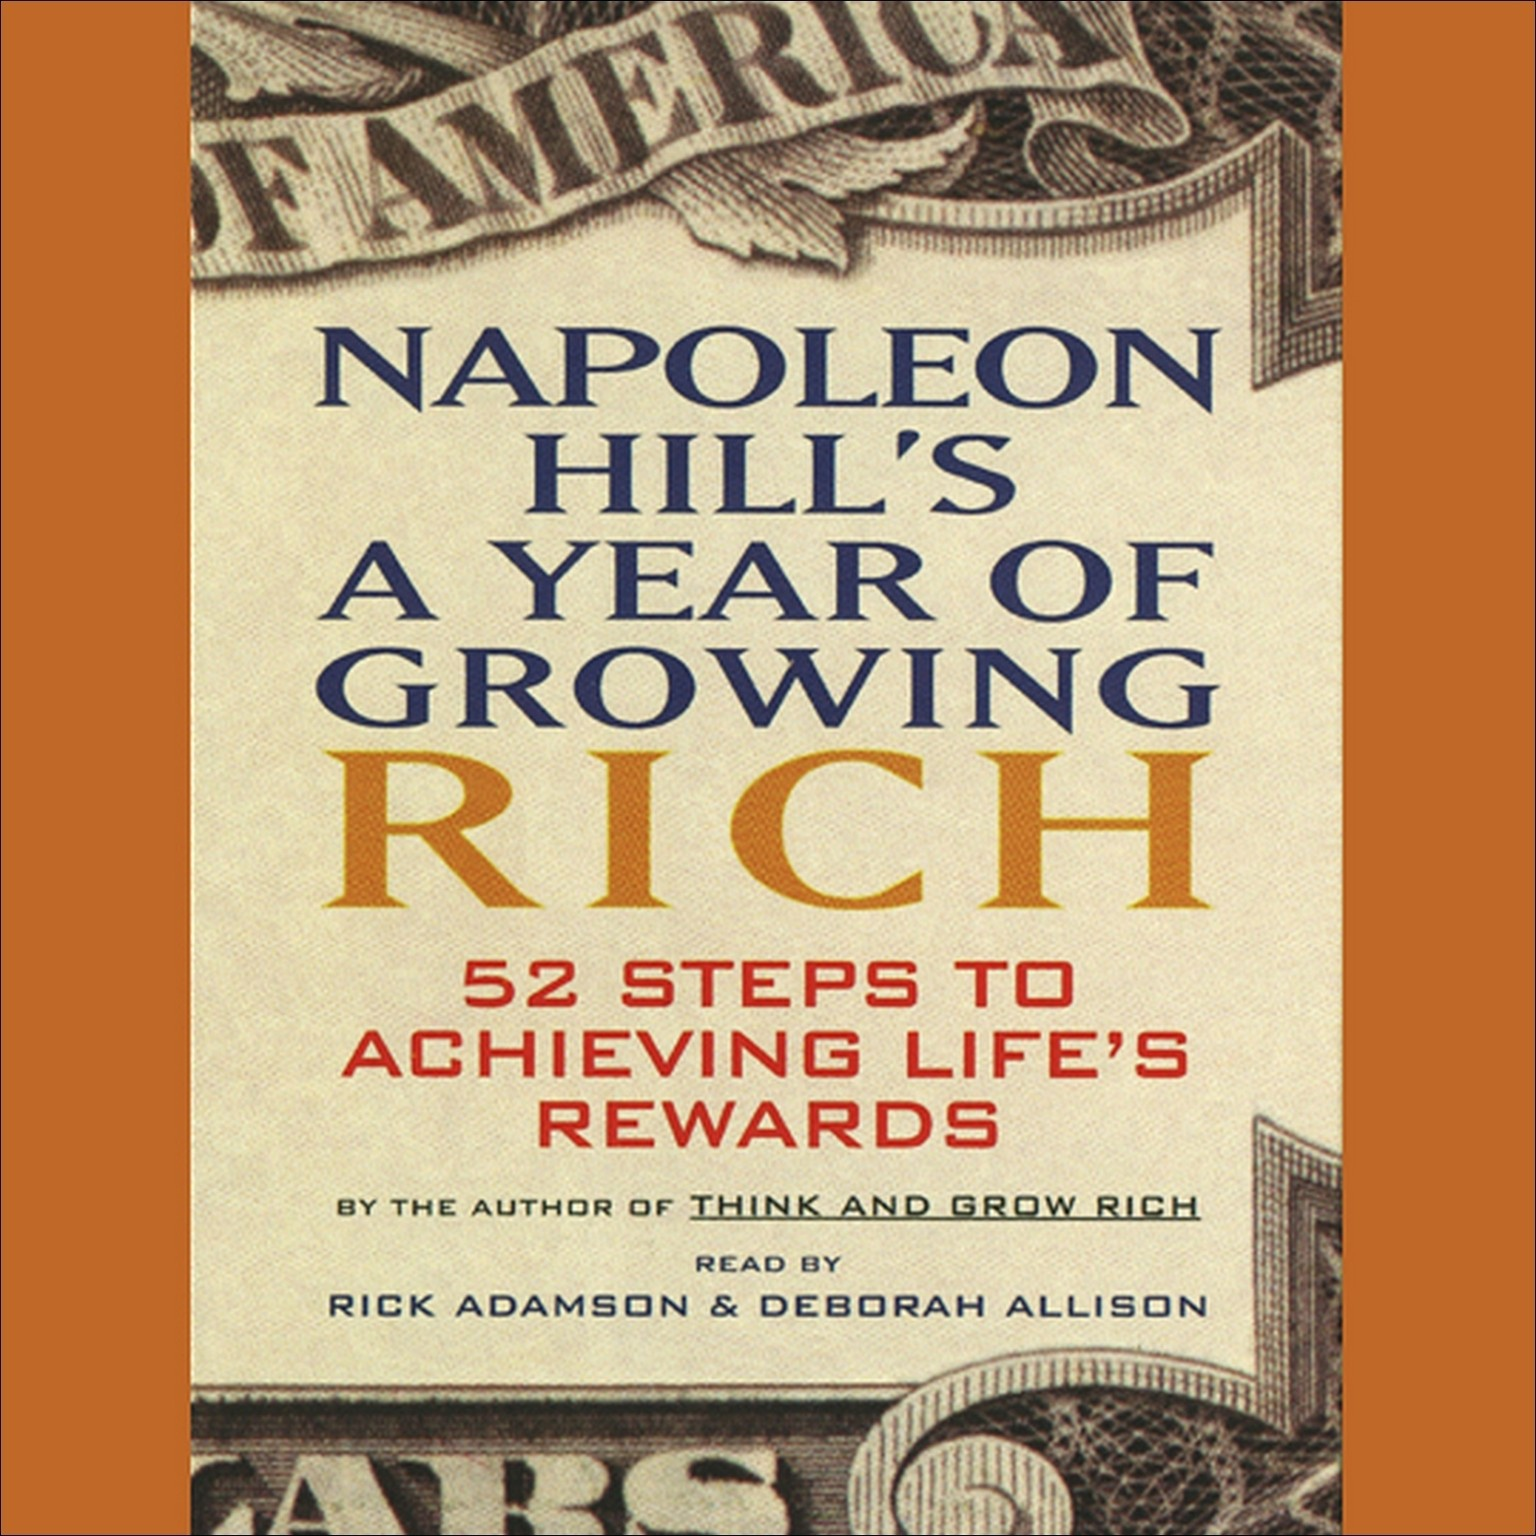 Printable Napoleon Hill's A Year of Growing Rich: 52 Steps to Achieving Life's Rewards Audiobook Cover Art